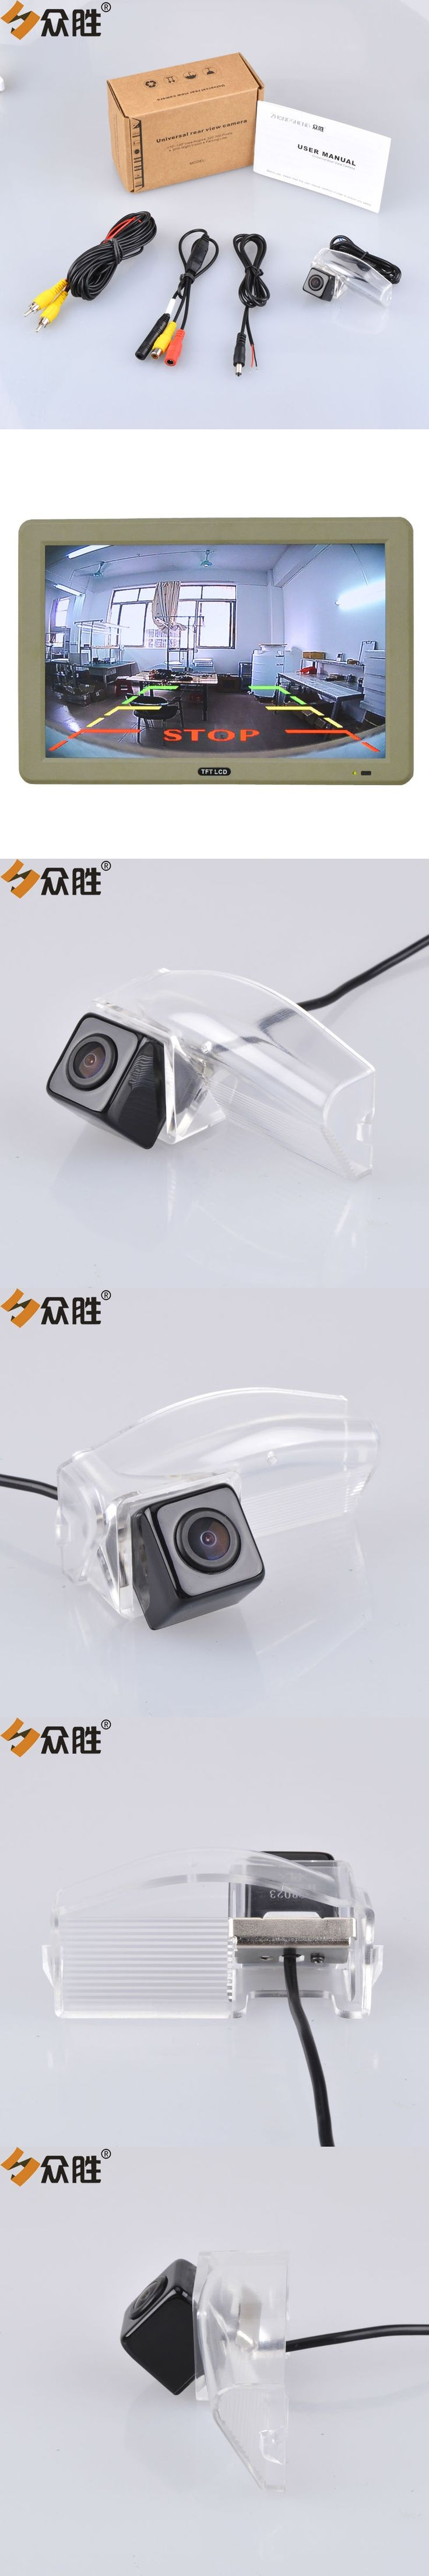 Car Rear View Camera for Mazda 2 Mazda 3 Car Reverse Parking Assistance Rearview Camera Auto Backup Camera Waterproof HS8023SMT